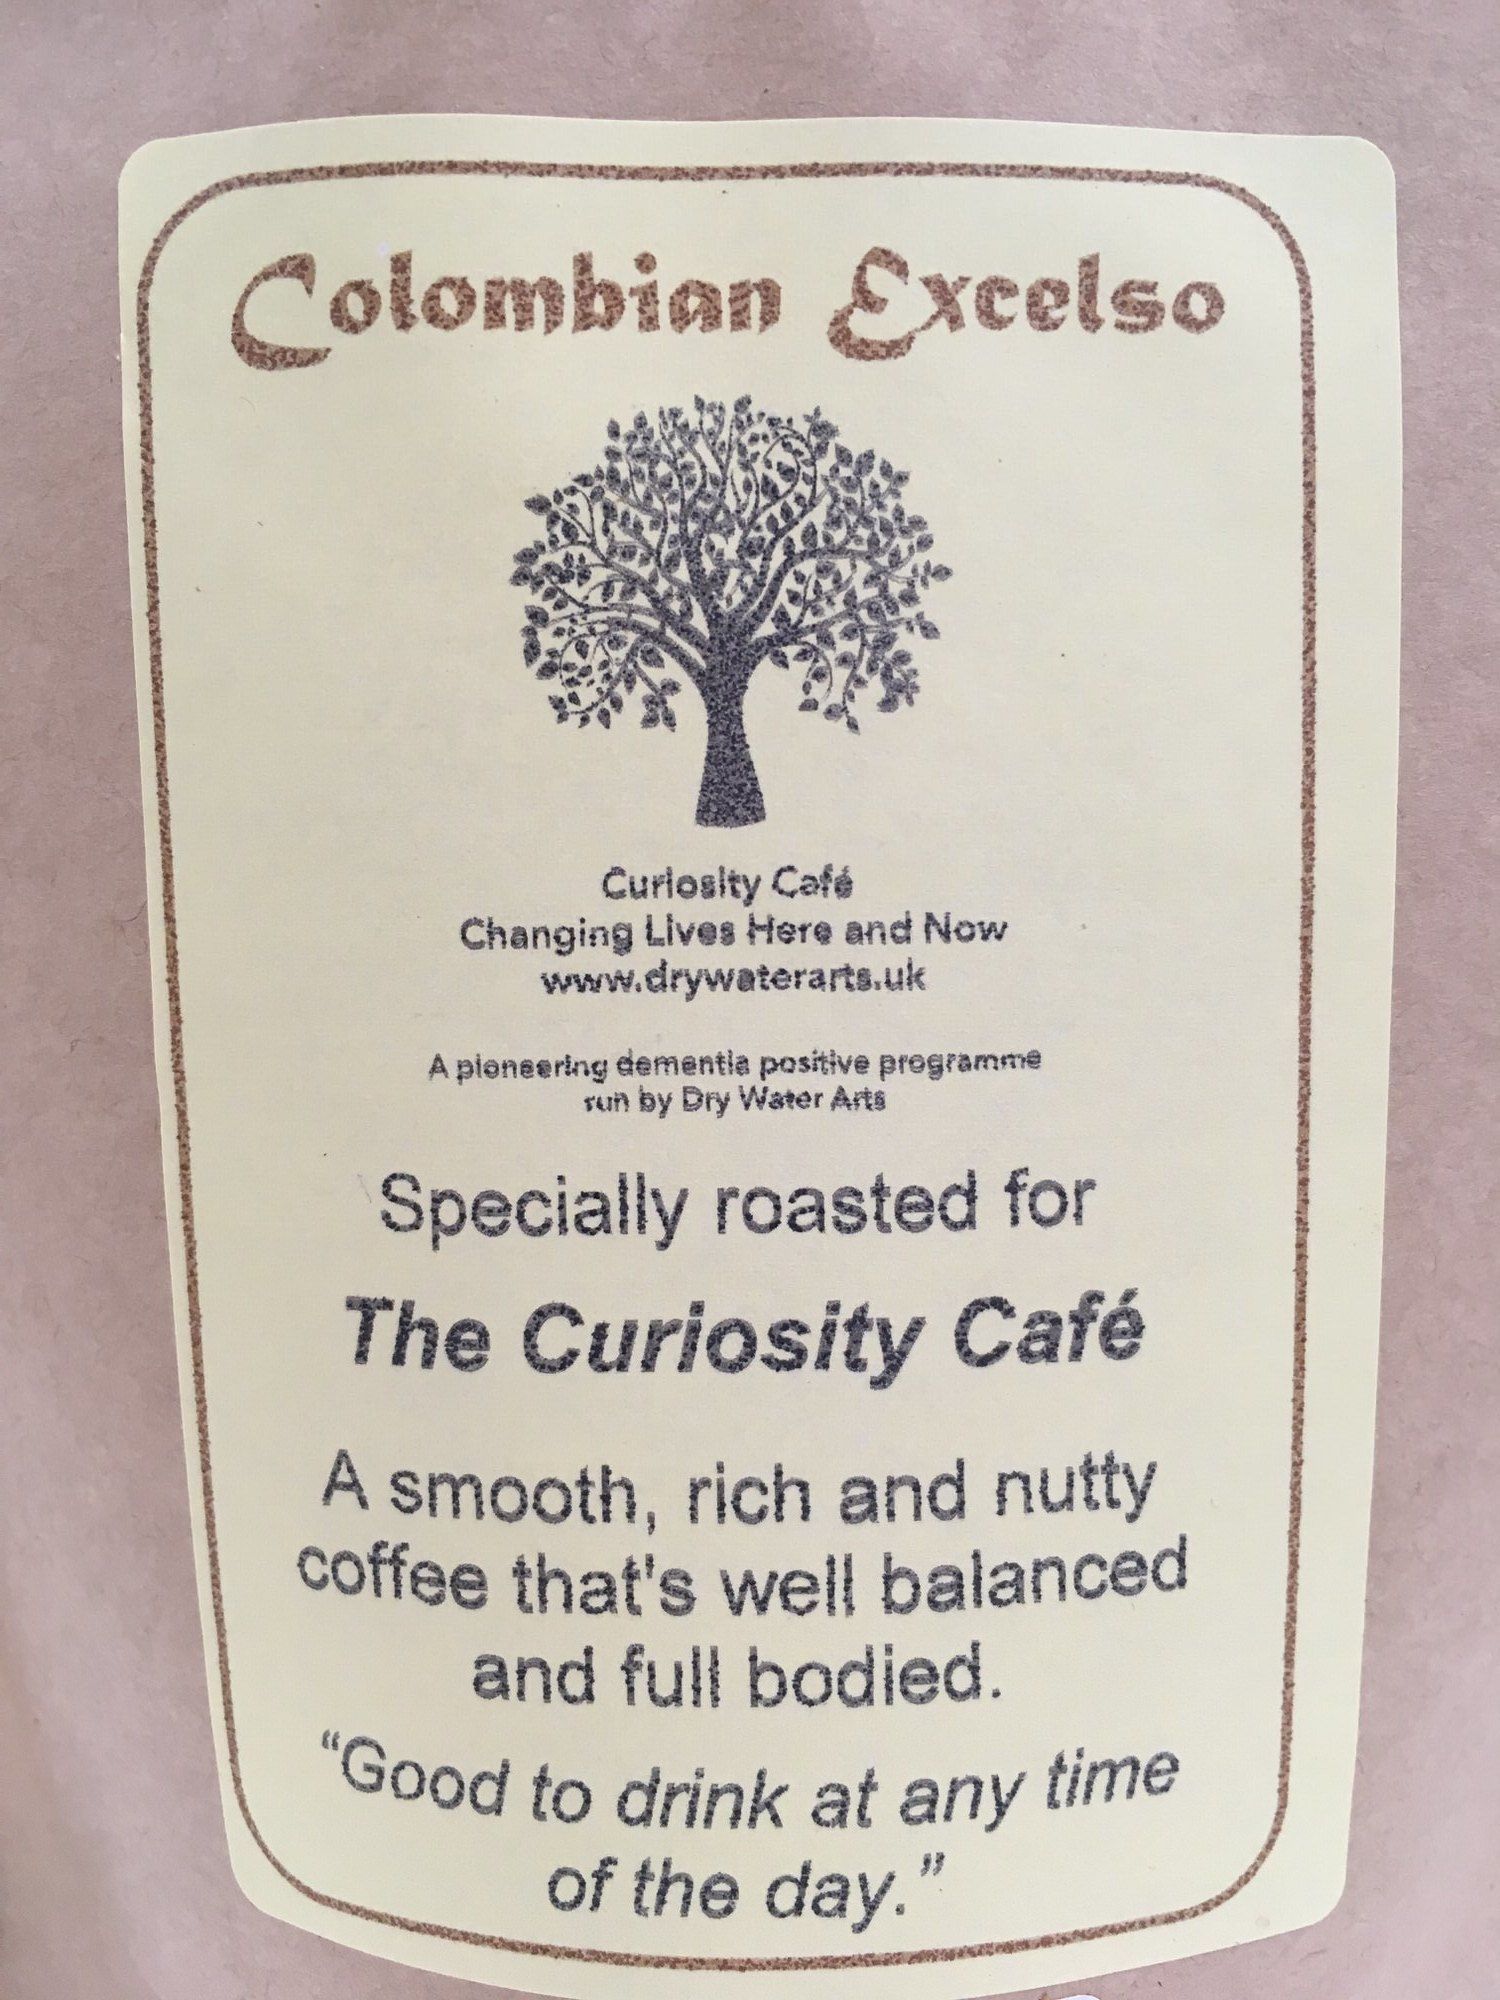 Good Coffee Doing Good - Do you love good coffee?Did you know drinking coffee can make good things happen?Help to support our dementia positive programme buy buying our delicious Curiosity Coffee. A special blend roasted here in Amble by the wonderful Mocha Mondo Coffee Team.